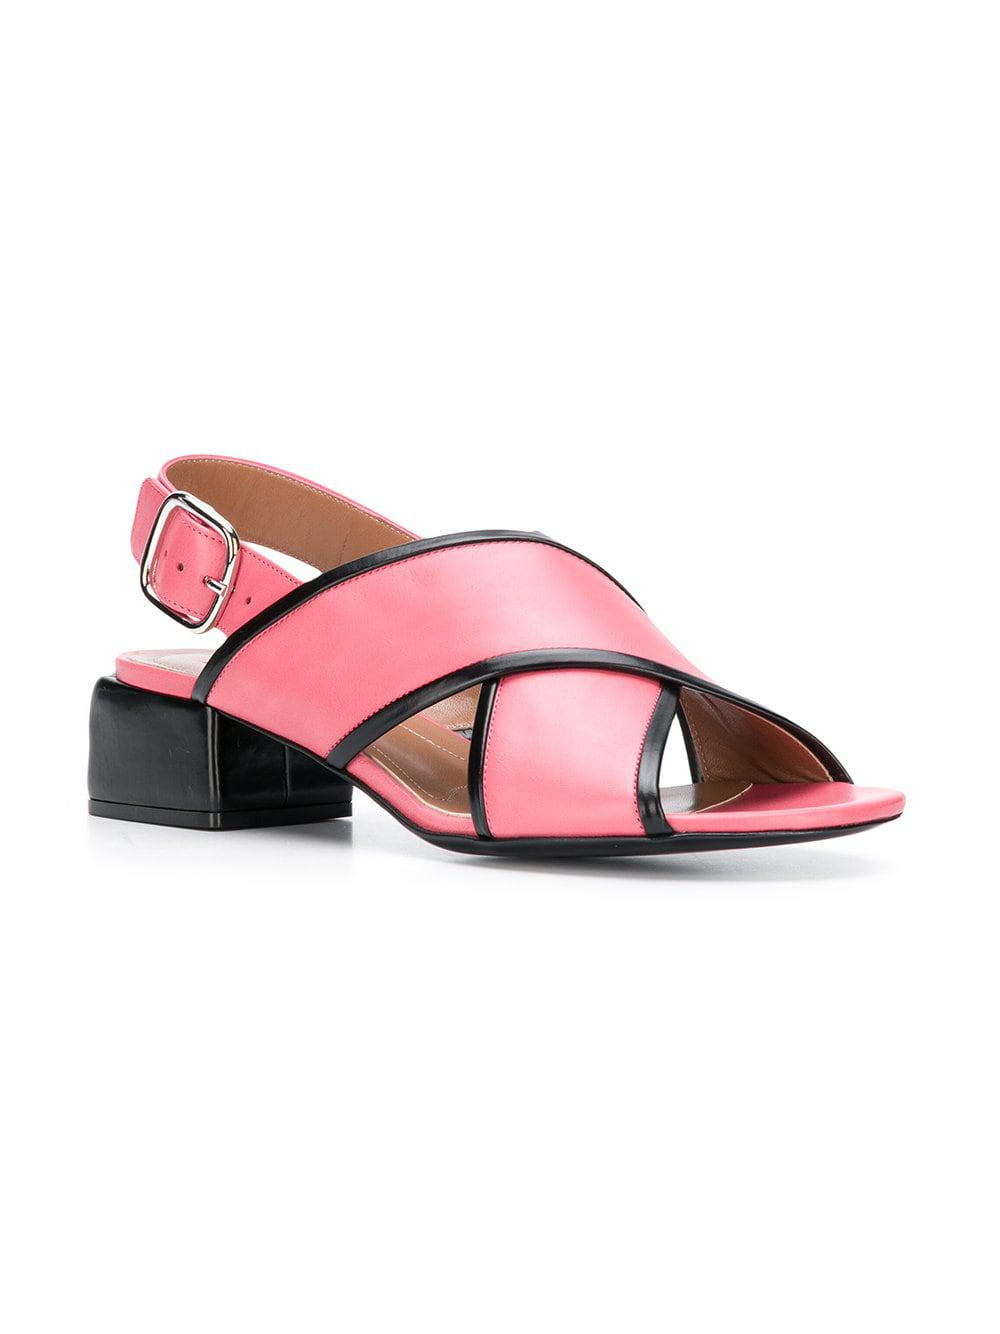 3877937aa80 Marni - Pink Leather Crossover Sandals - Lyst. View fullscreen